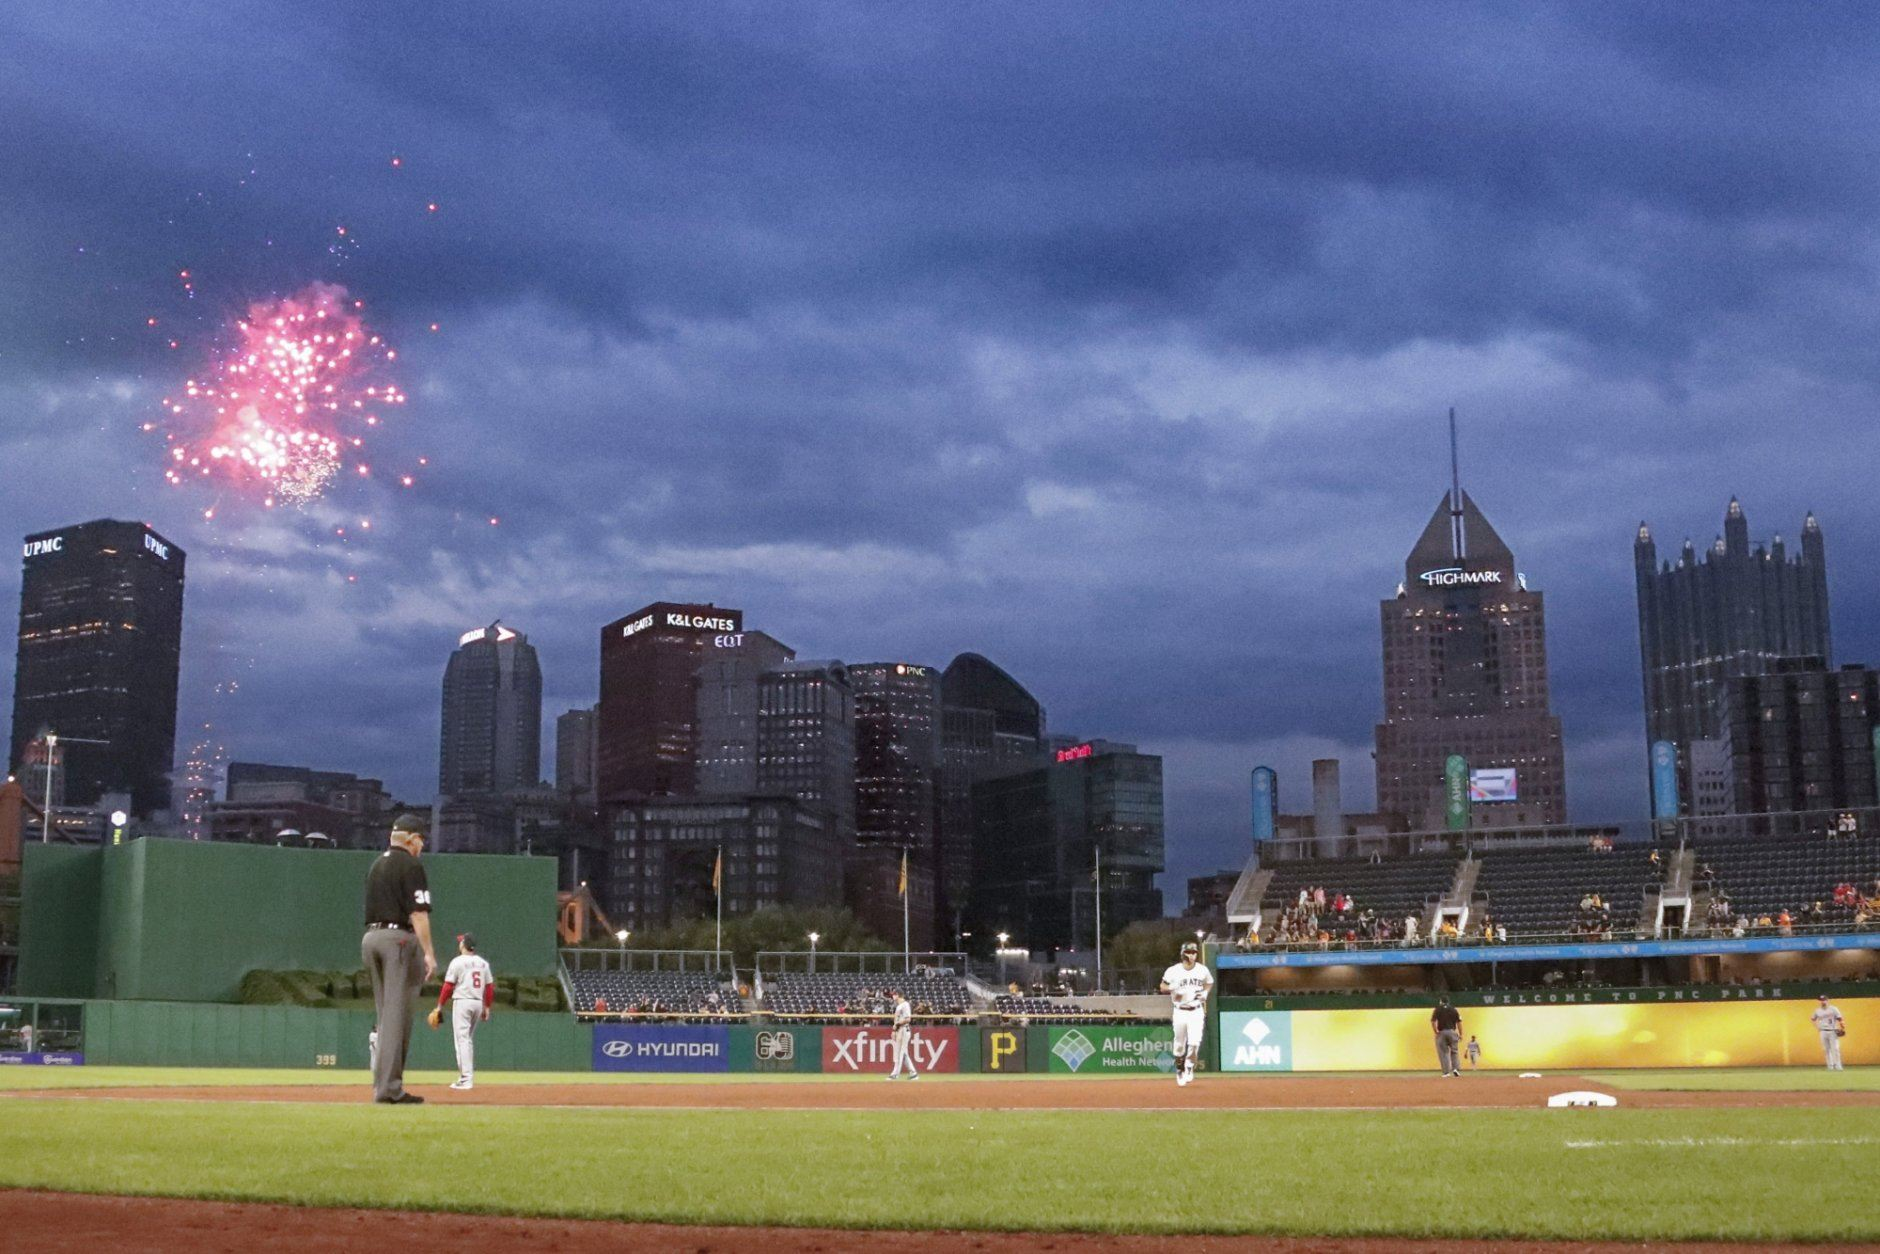 Fireworks explode as Pittsburgh Pirates Adam Frazier, center right, rounds second base after hitting a solo home run against the Washington Nationals in the third of a baseball game Thursday, Aug. 22, 2019, in Pittsburgh. (AP Photo/Keith Srakocic)